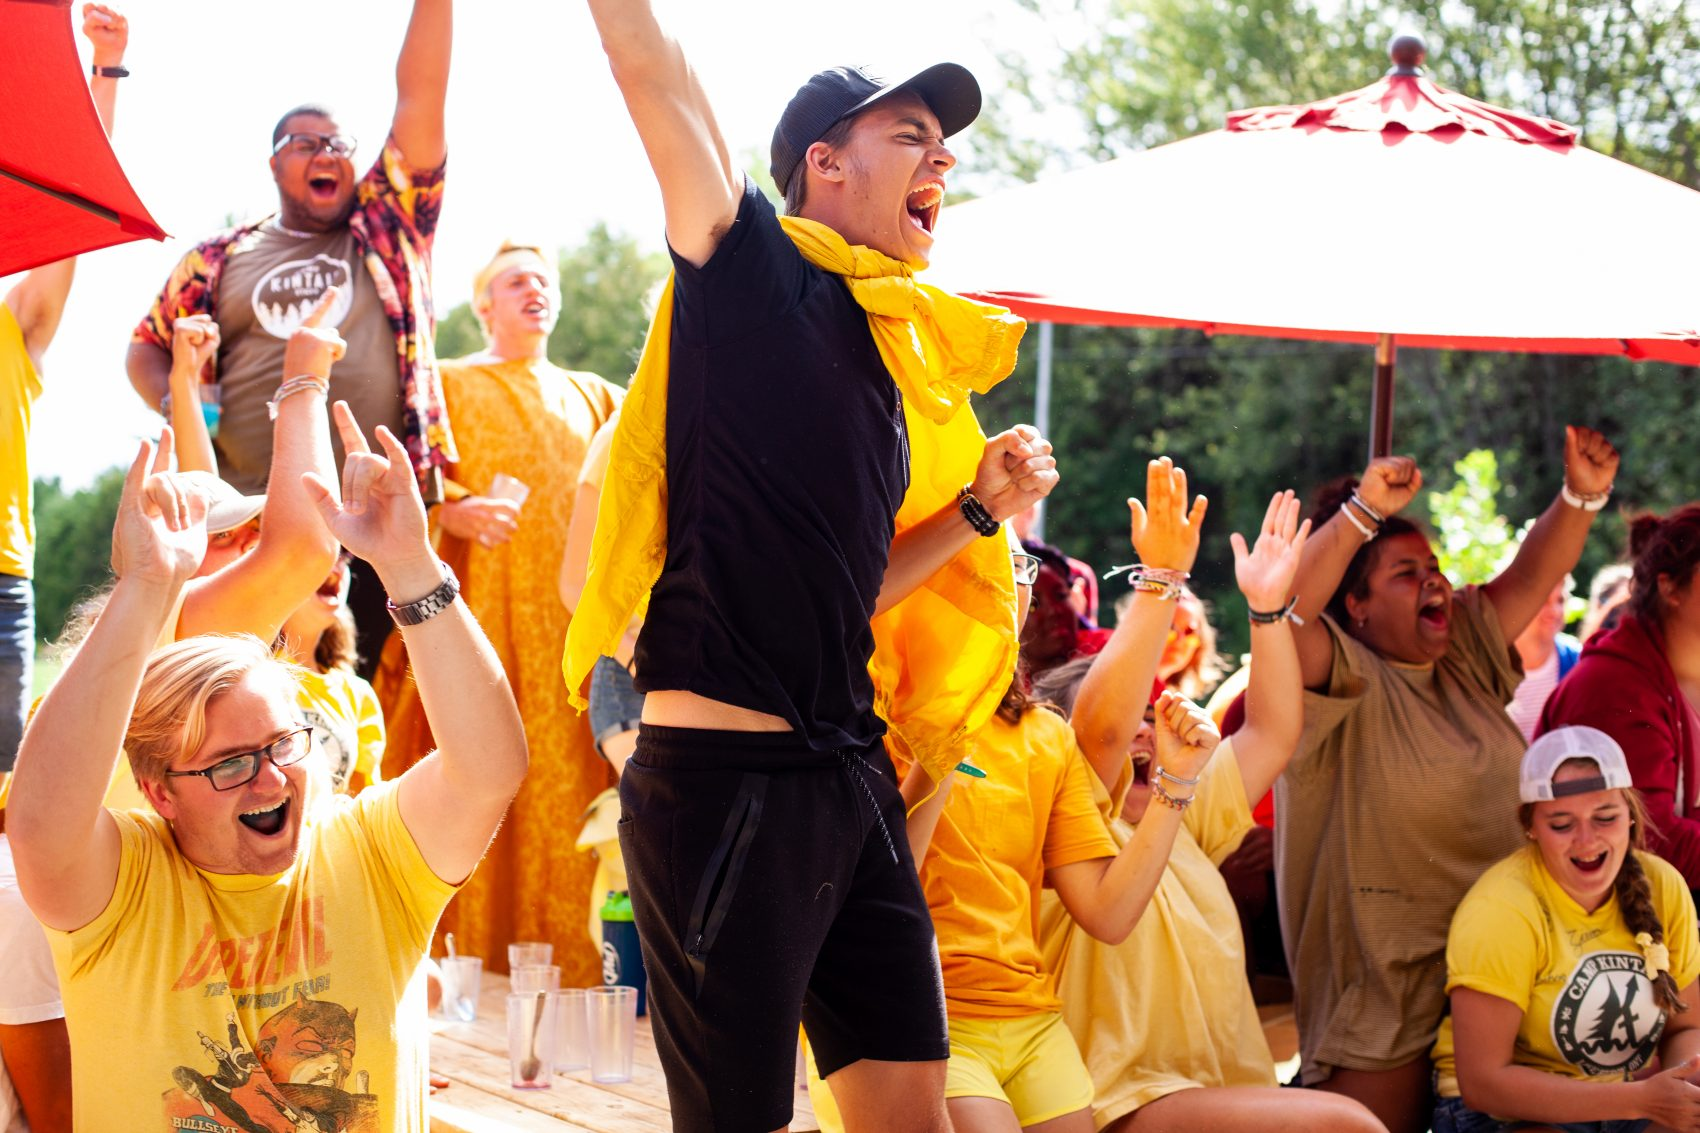 Staff members dressed in yellow chant, scream, and cheer enthusiastically at summer camp!